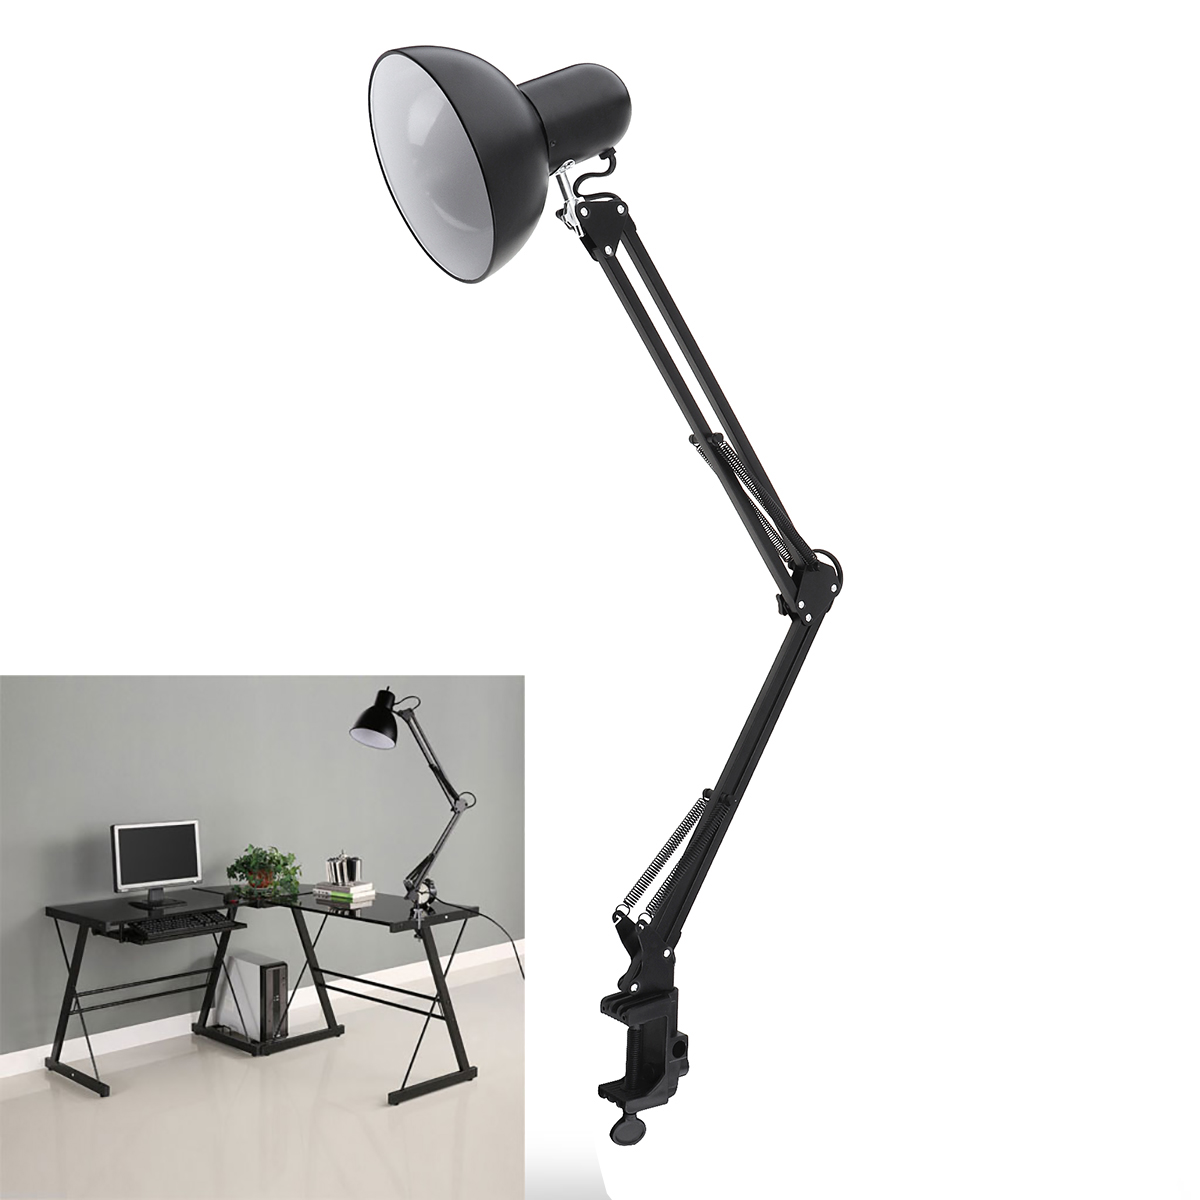 Flexible Table LED Lamp Swing Arm Mount Clamp Lamp Home Offi